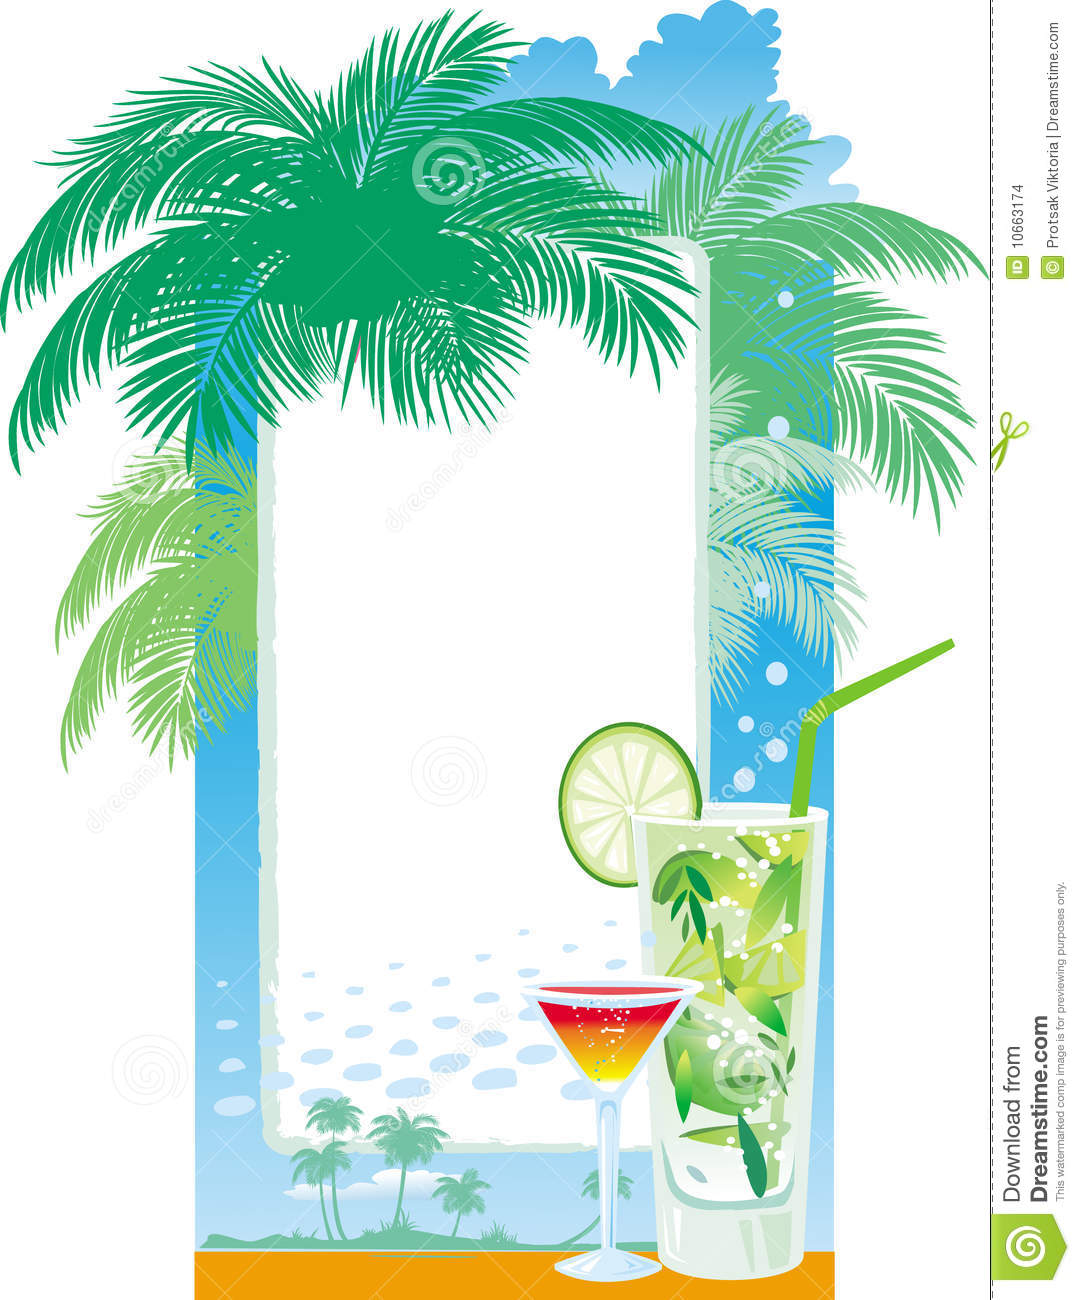 drink menu template microsoft word - free other design file page 10